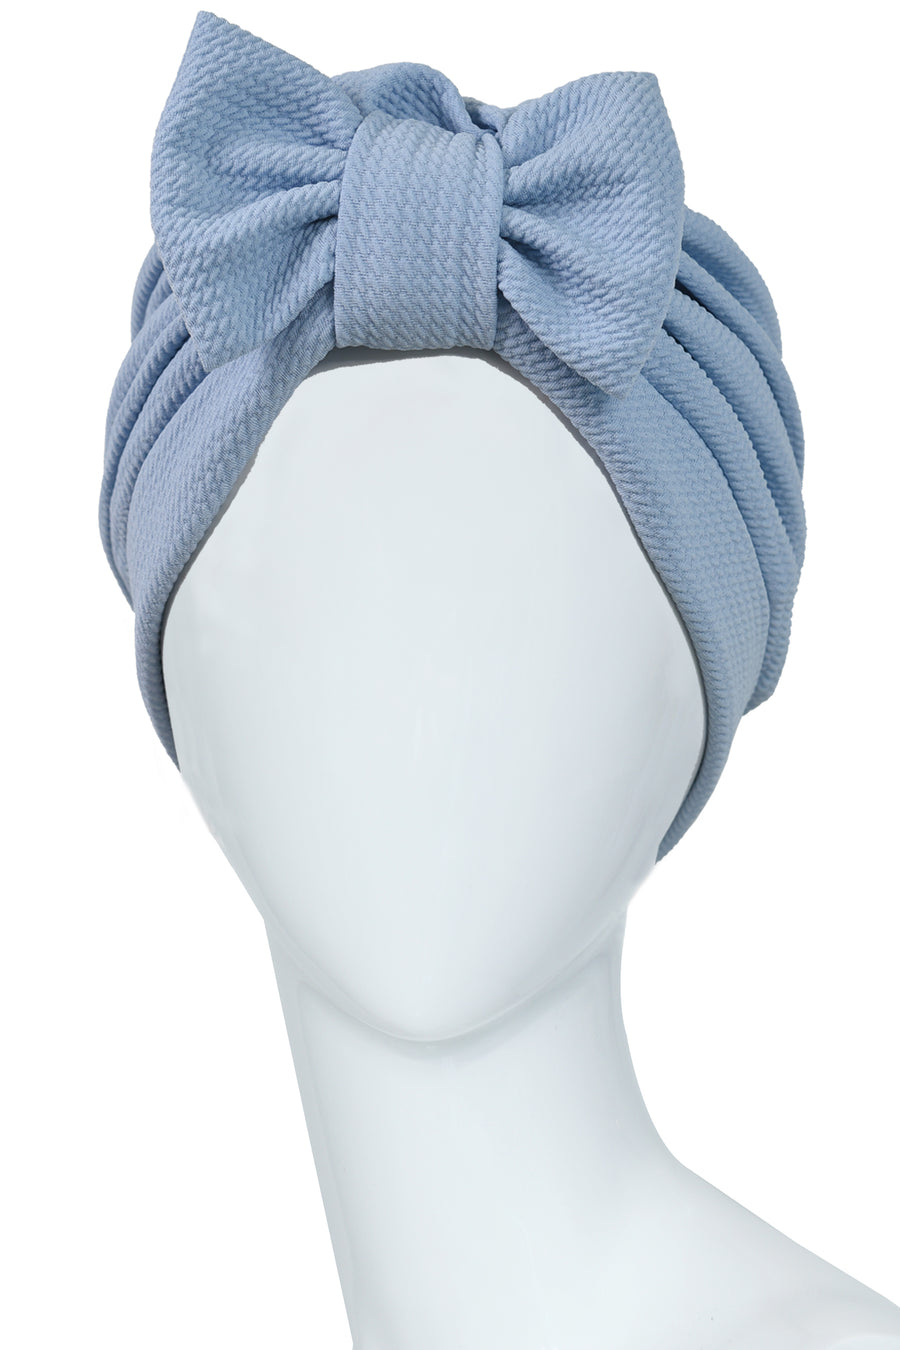 Censier - NEW TURBAN !